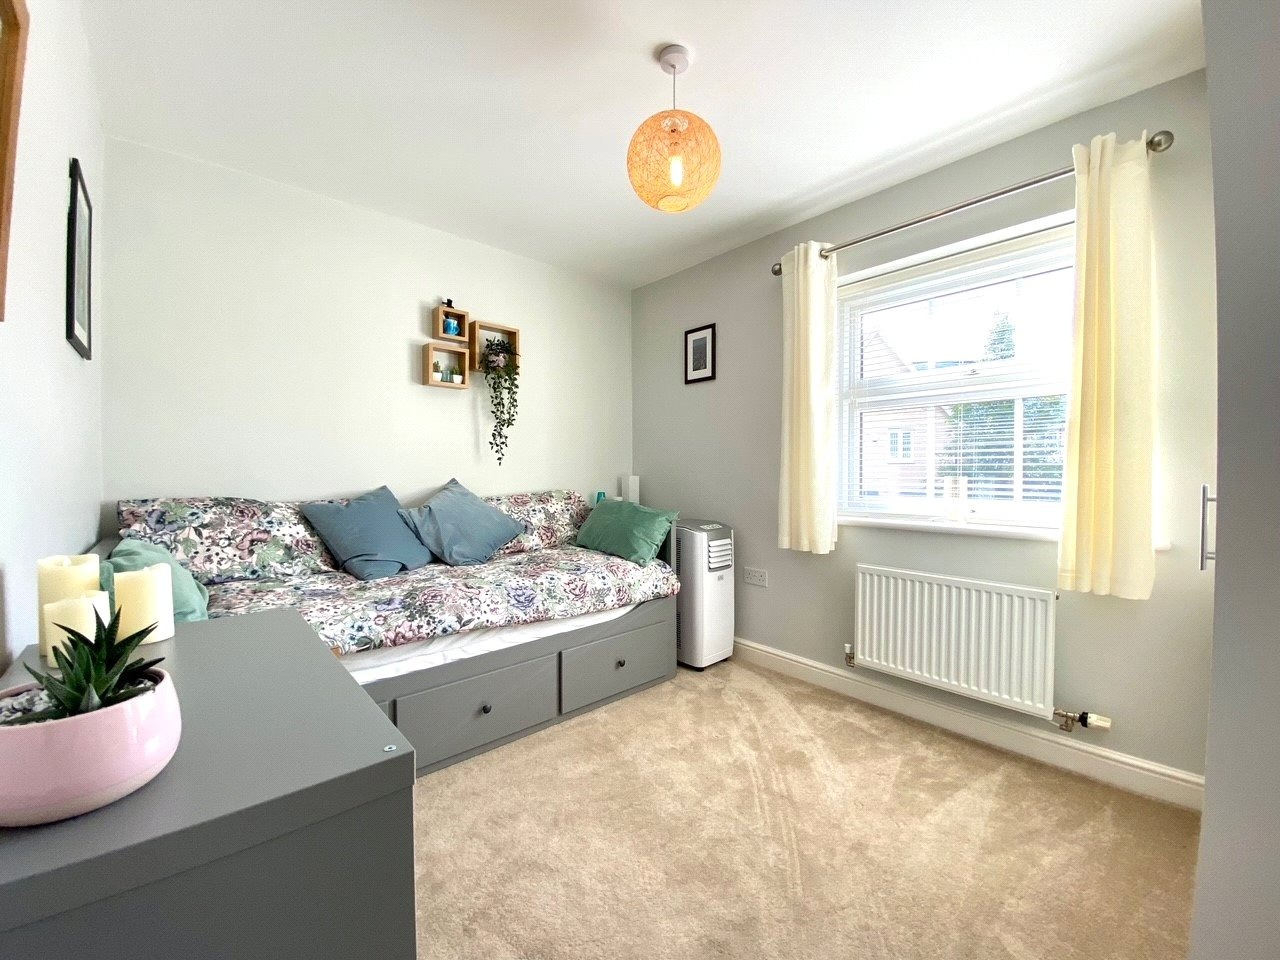 4 bed detached house for sale in Lannesbury Crescent, St. Neots  - Property Image 13